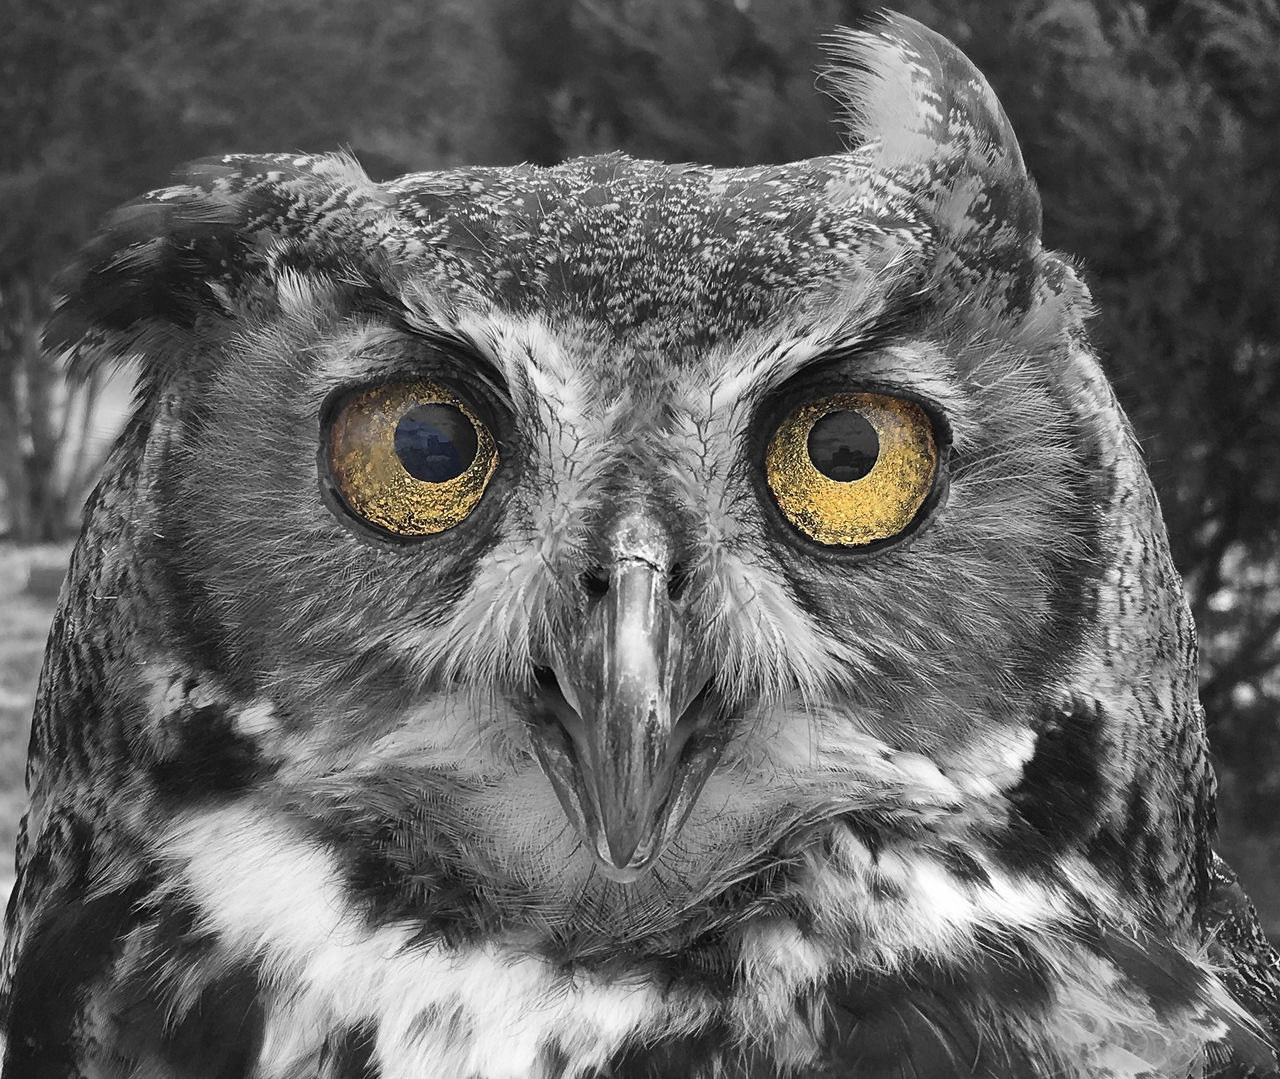 Black and white owl with yellow eyes Animal Eye Animal Themes Animal Wildlife Animals In The Wild Beak Beauty In Nature Bird Bird Of Prey Black Background Blackandwhite Close-up Focus On Foreground Looking At Camera One Animal Owl Portrait Yellow Eyes